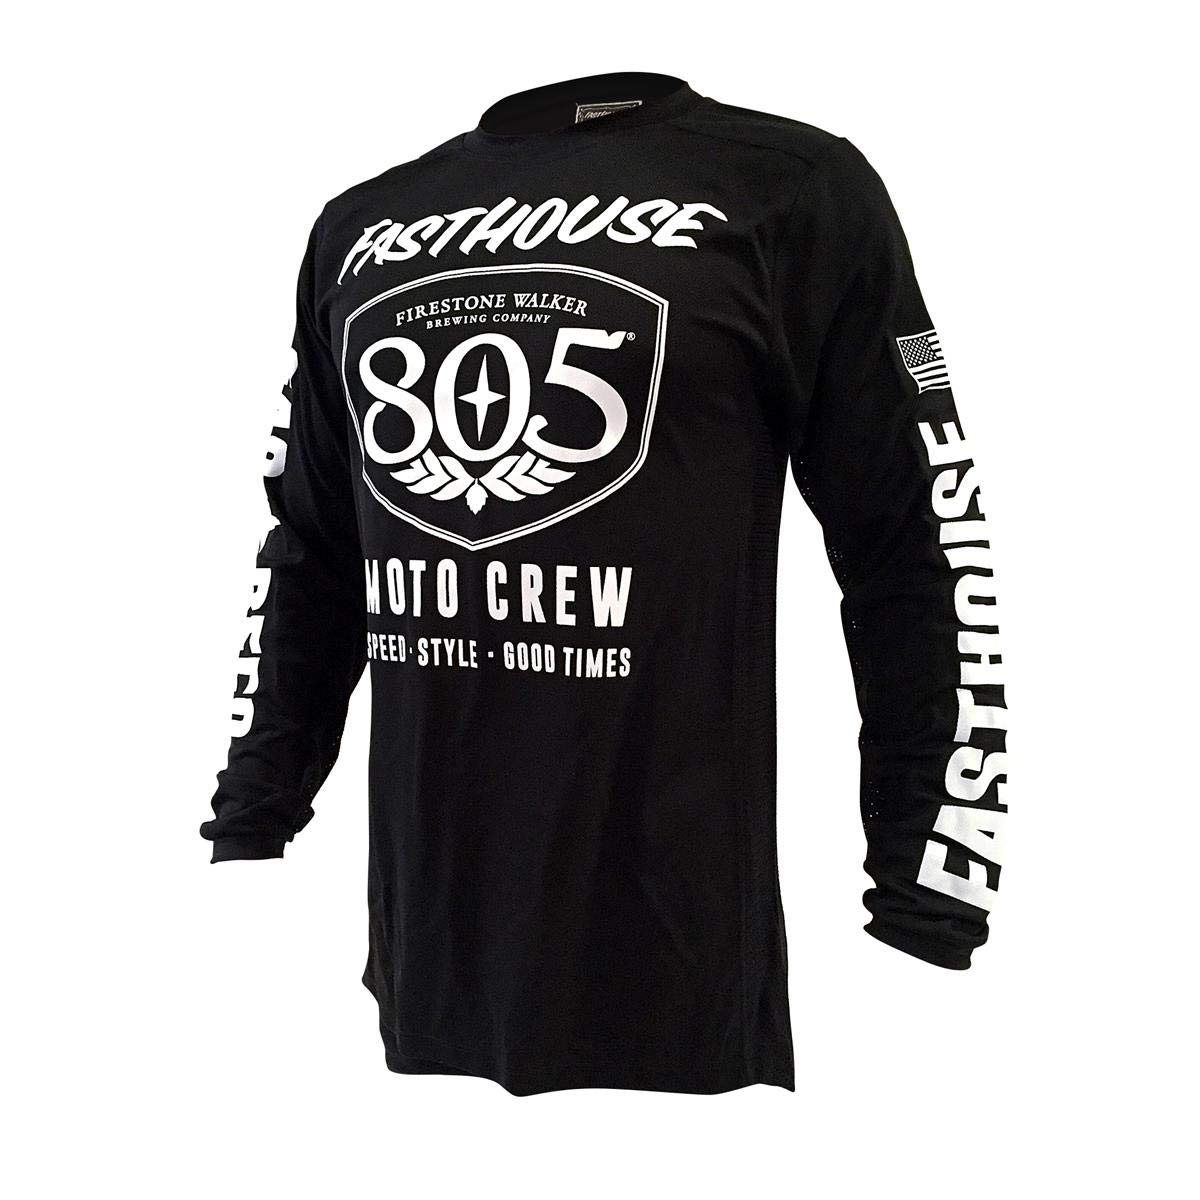 830c4e175 Amazon.com  Fasthouse 805 Shield Air Cooled Men s Motocross Motorcycle  Jersey Black  Clothing